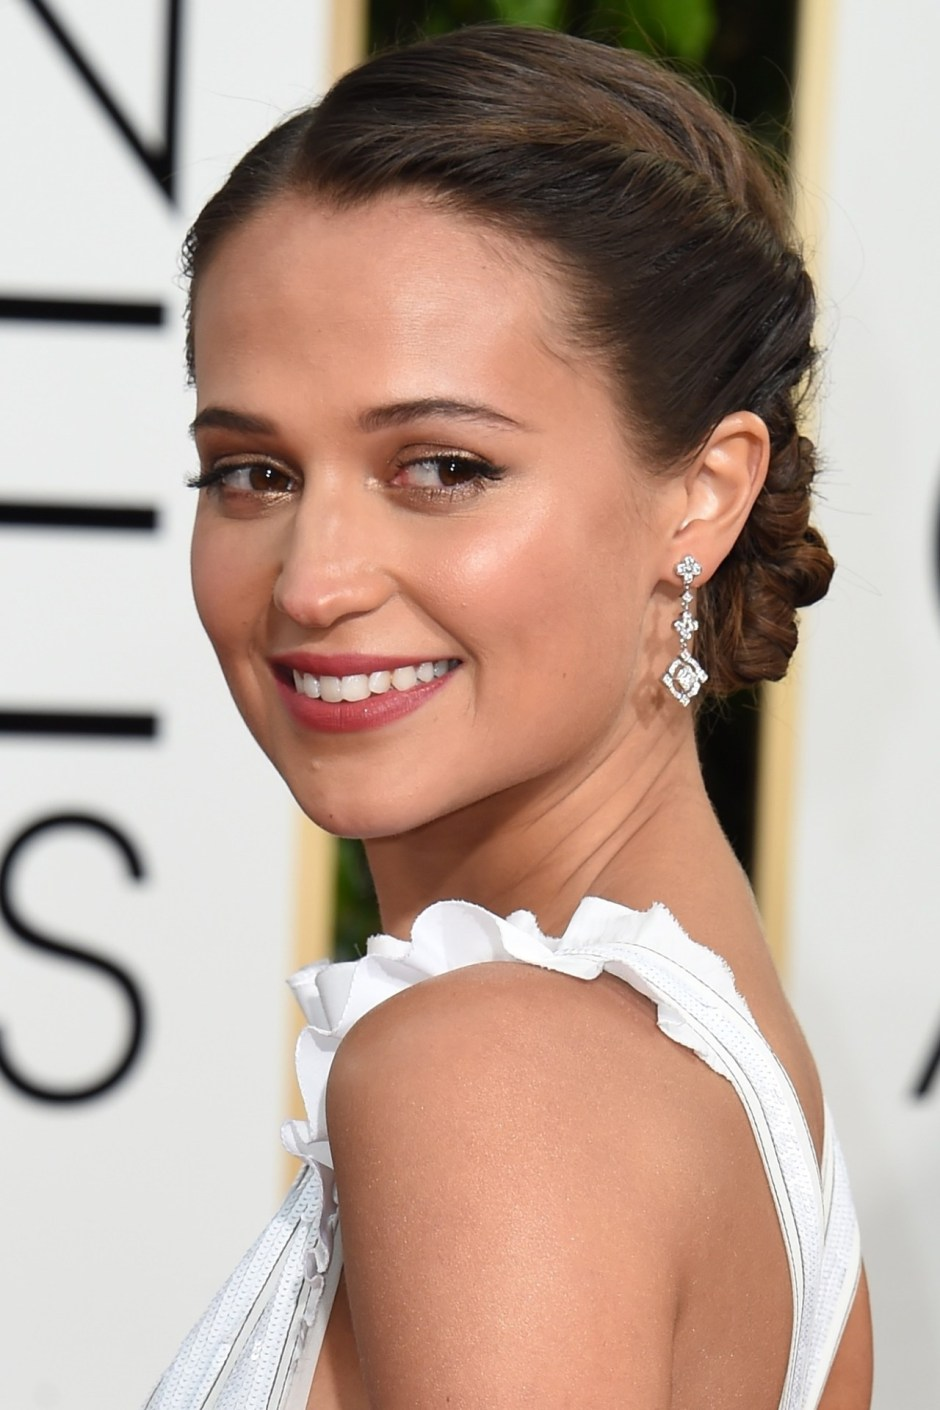 Alicia Vikander hair and make up at the Golden Globes